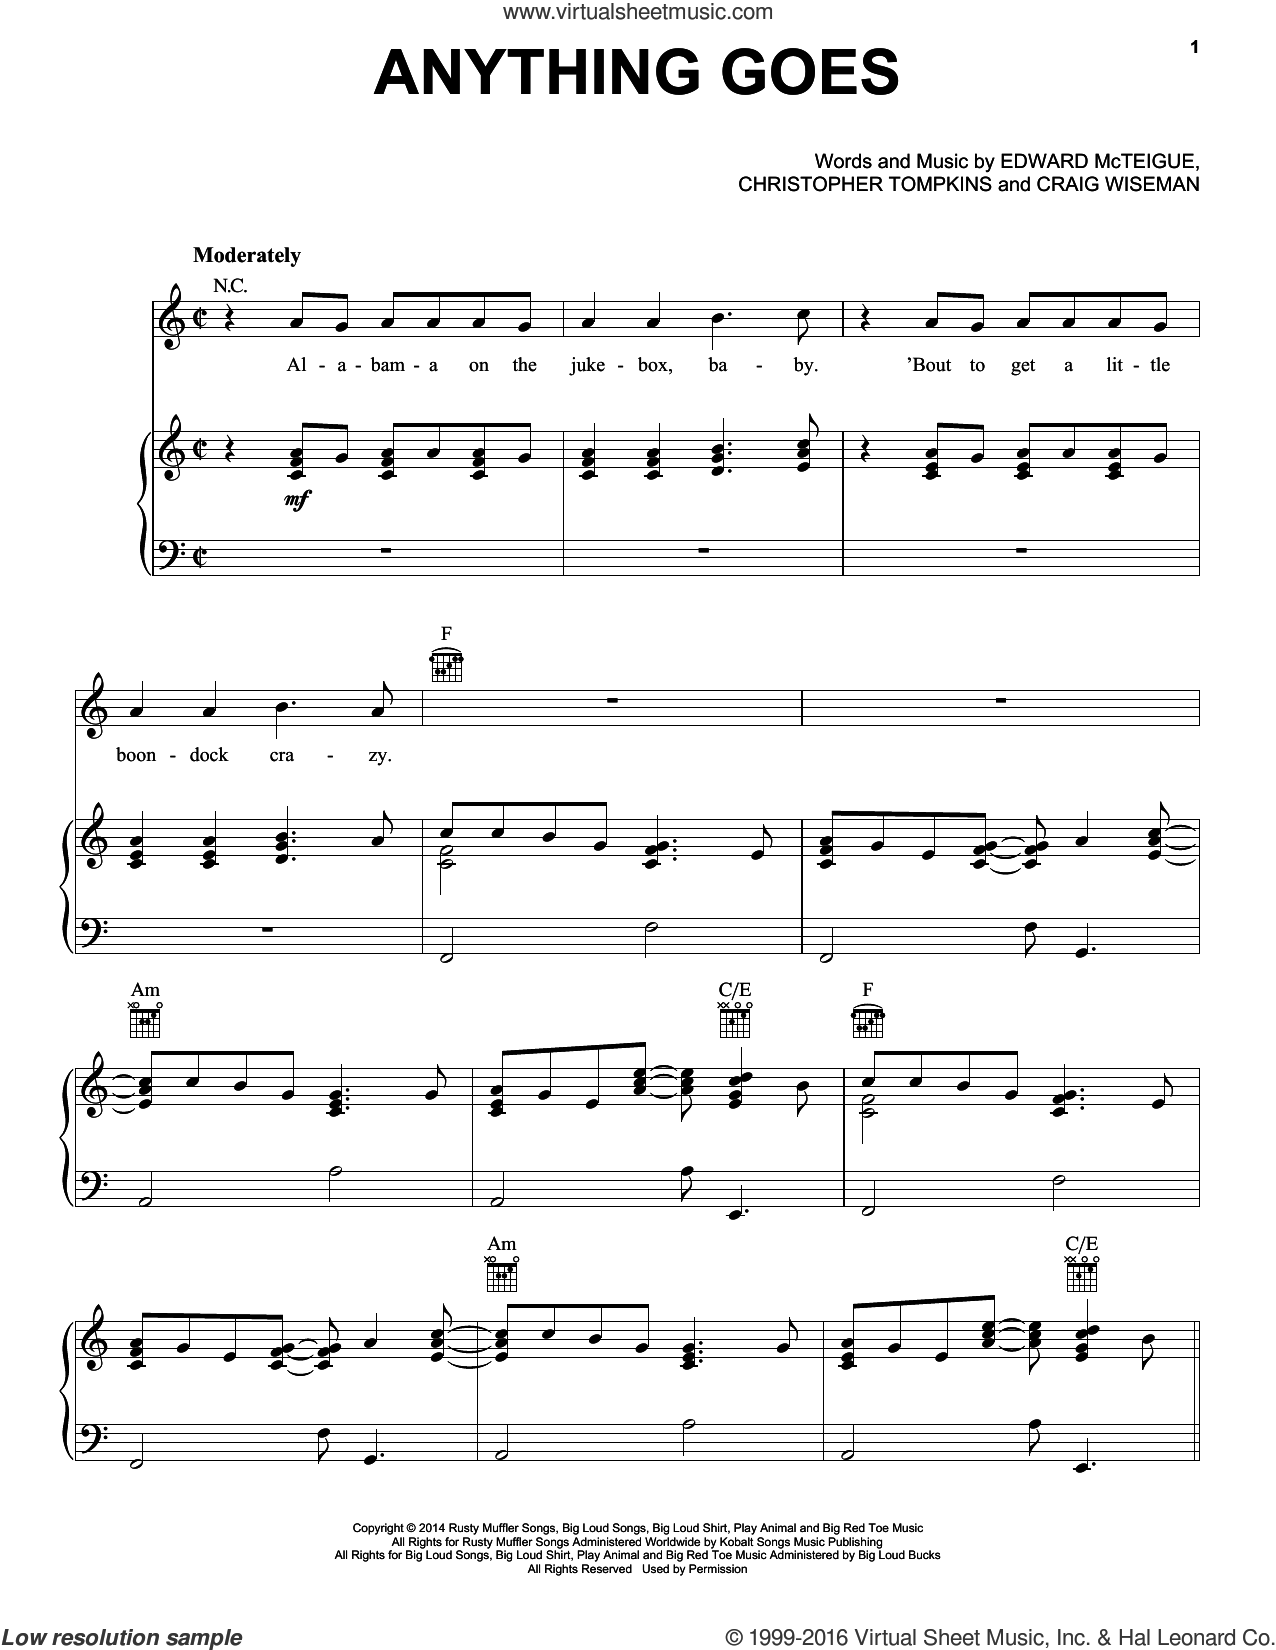 Anything Goes sheet music for voice, piano or guitar by Florida Georgia Line, Christopher Tompkins, Craig Wiseman and Edward McTeigue, intermediate